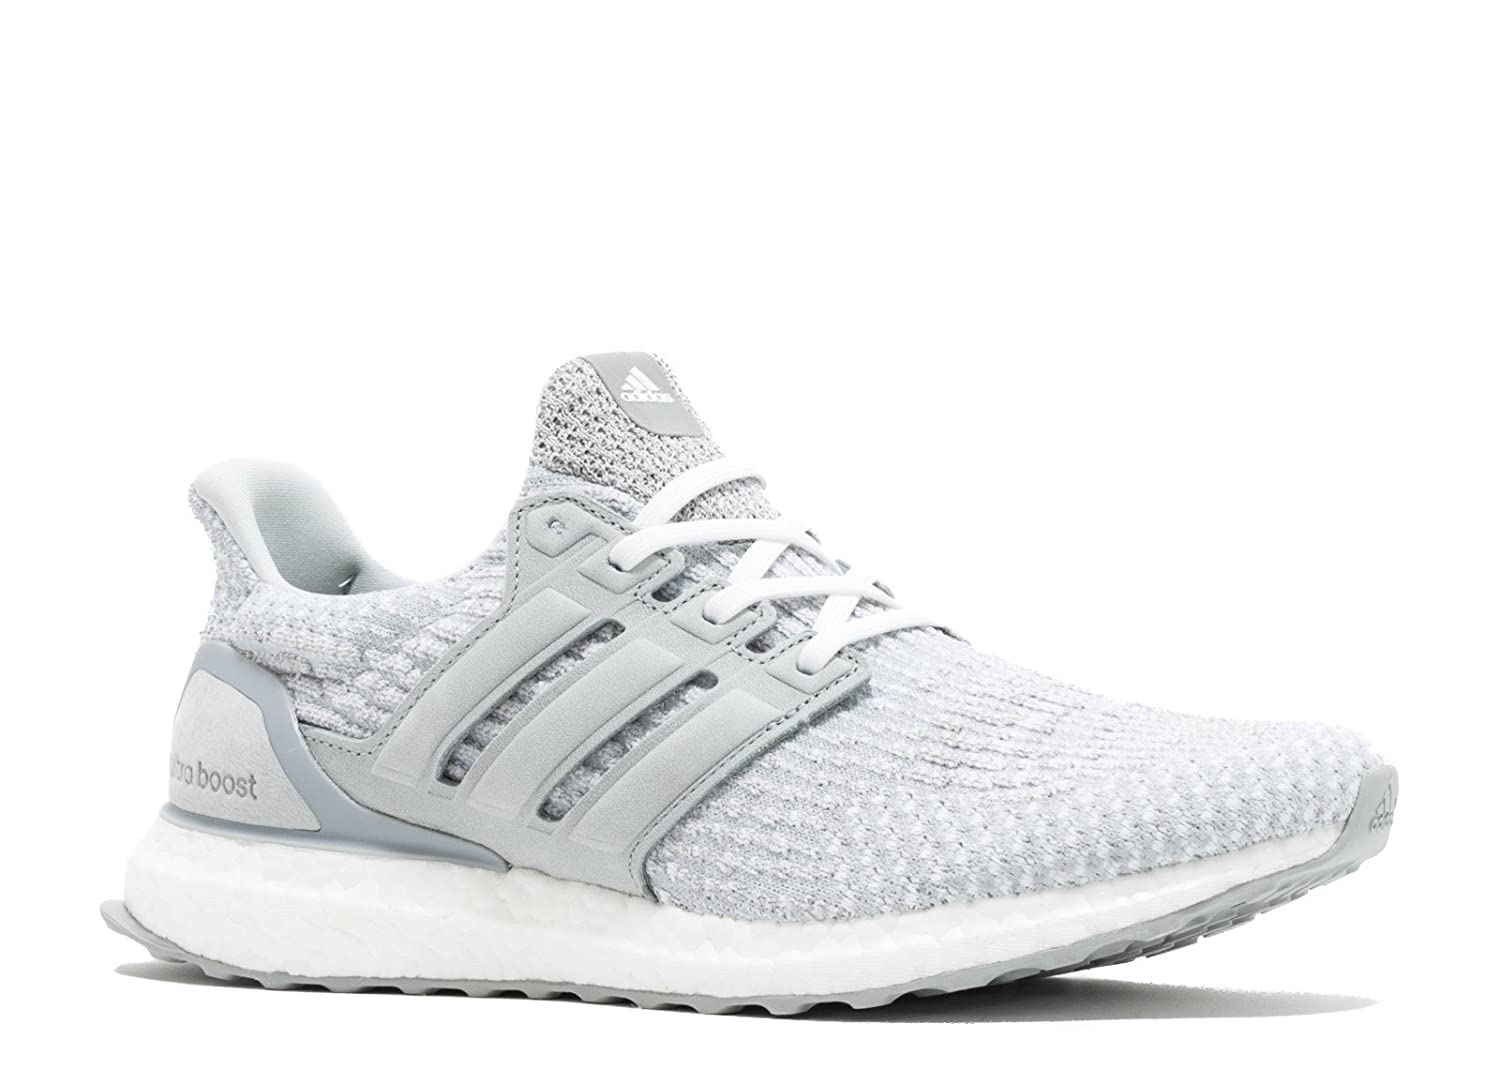 los angeles d3f9f 7d946 Amazon.com: adidas Ultraboost W (Reigning Champ): Shoes